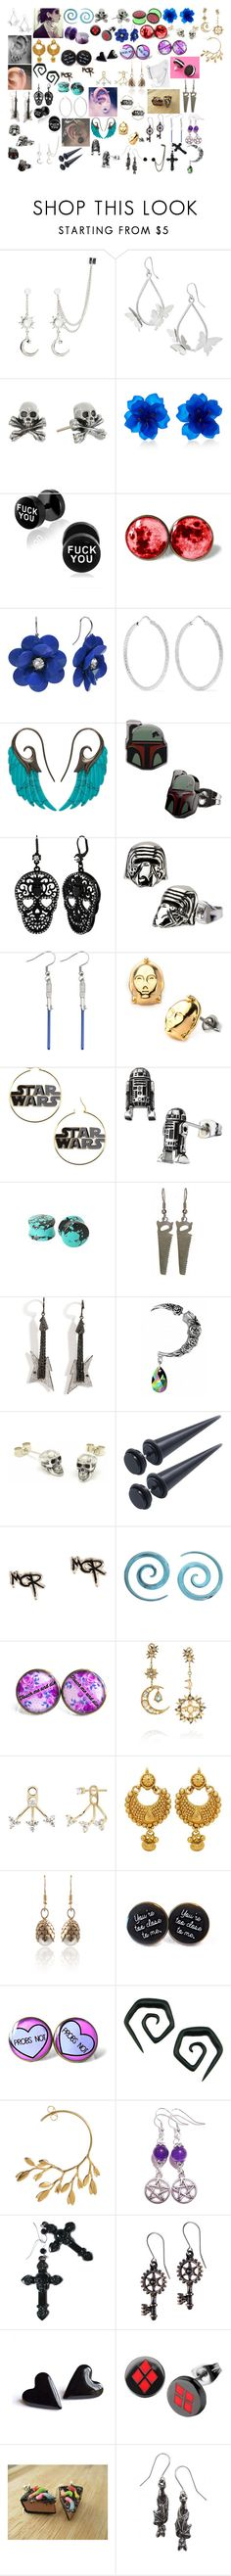 """""""Earrings 5"""" by spellcasters ❤ liked on Polyvore featuring Hot Topic, King Baby Studio, Matthew&Melka, Carolina Bucci, Noor Fares, Betsey Johnson, Lynn Ban, Fou Jewellery, Diego Percossi Papi and EF Collection"""